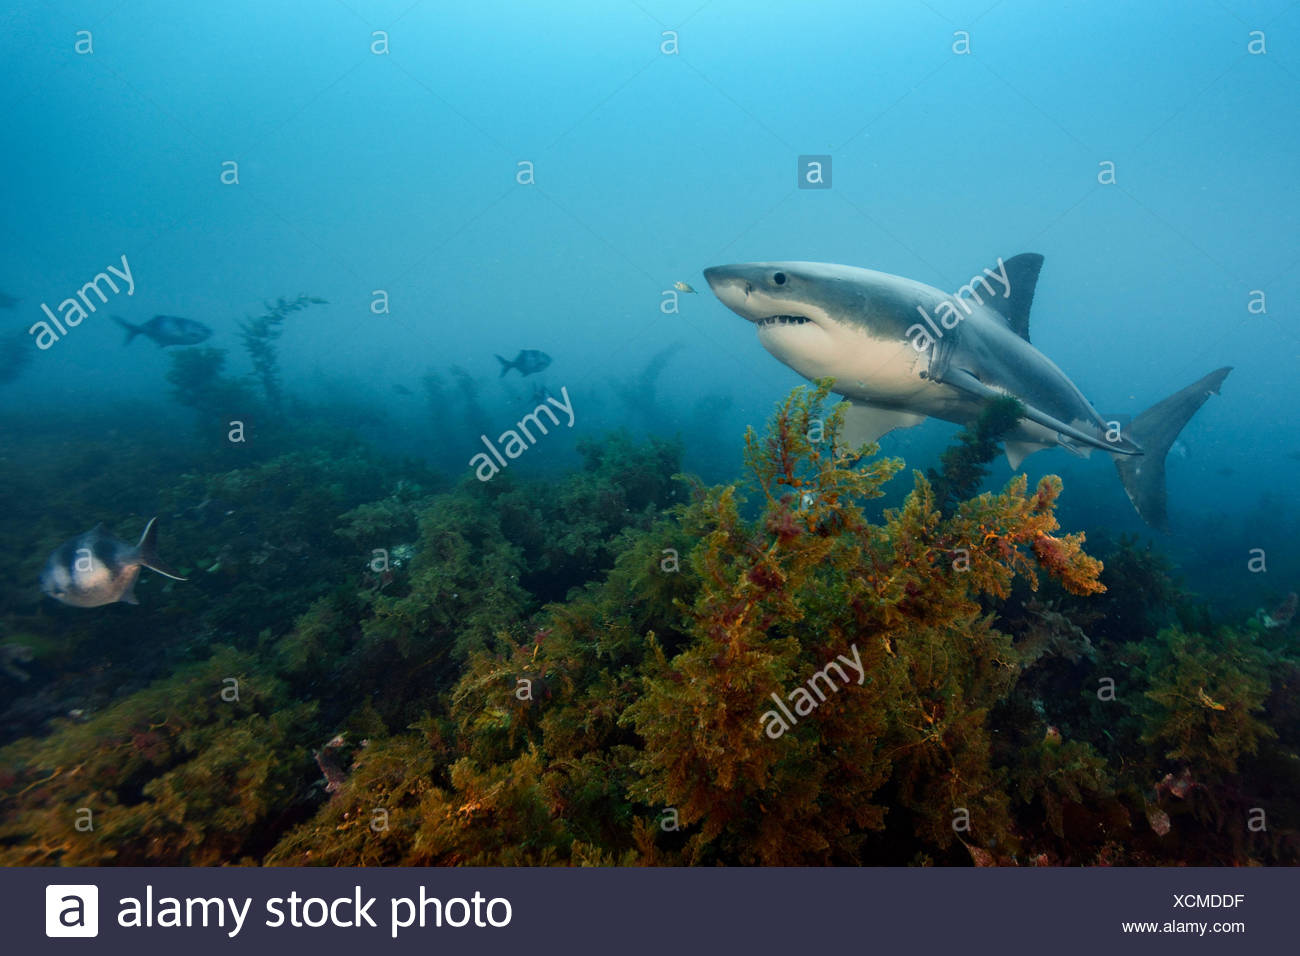 A great white shark swims in waters off the Neptune Islands. - Stock Image